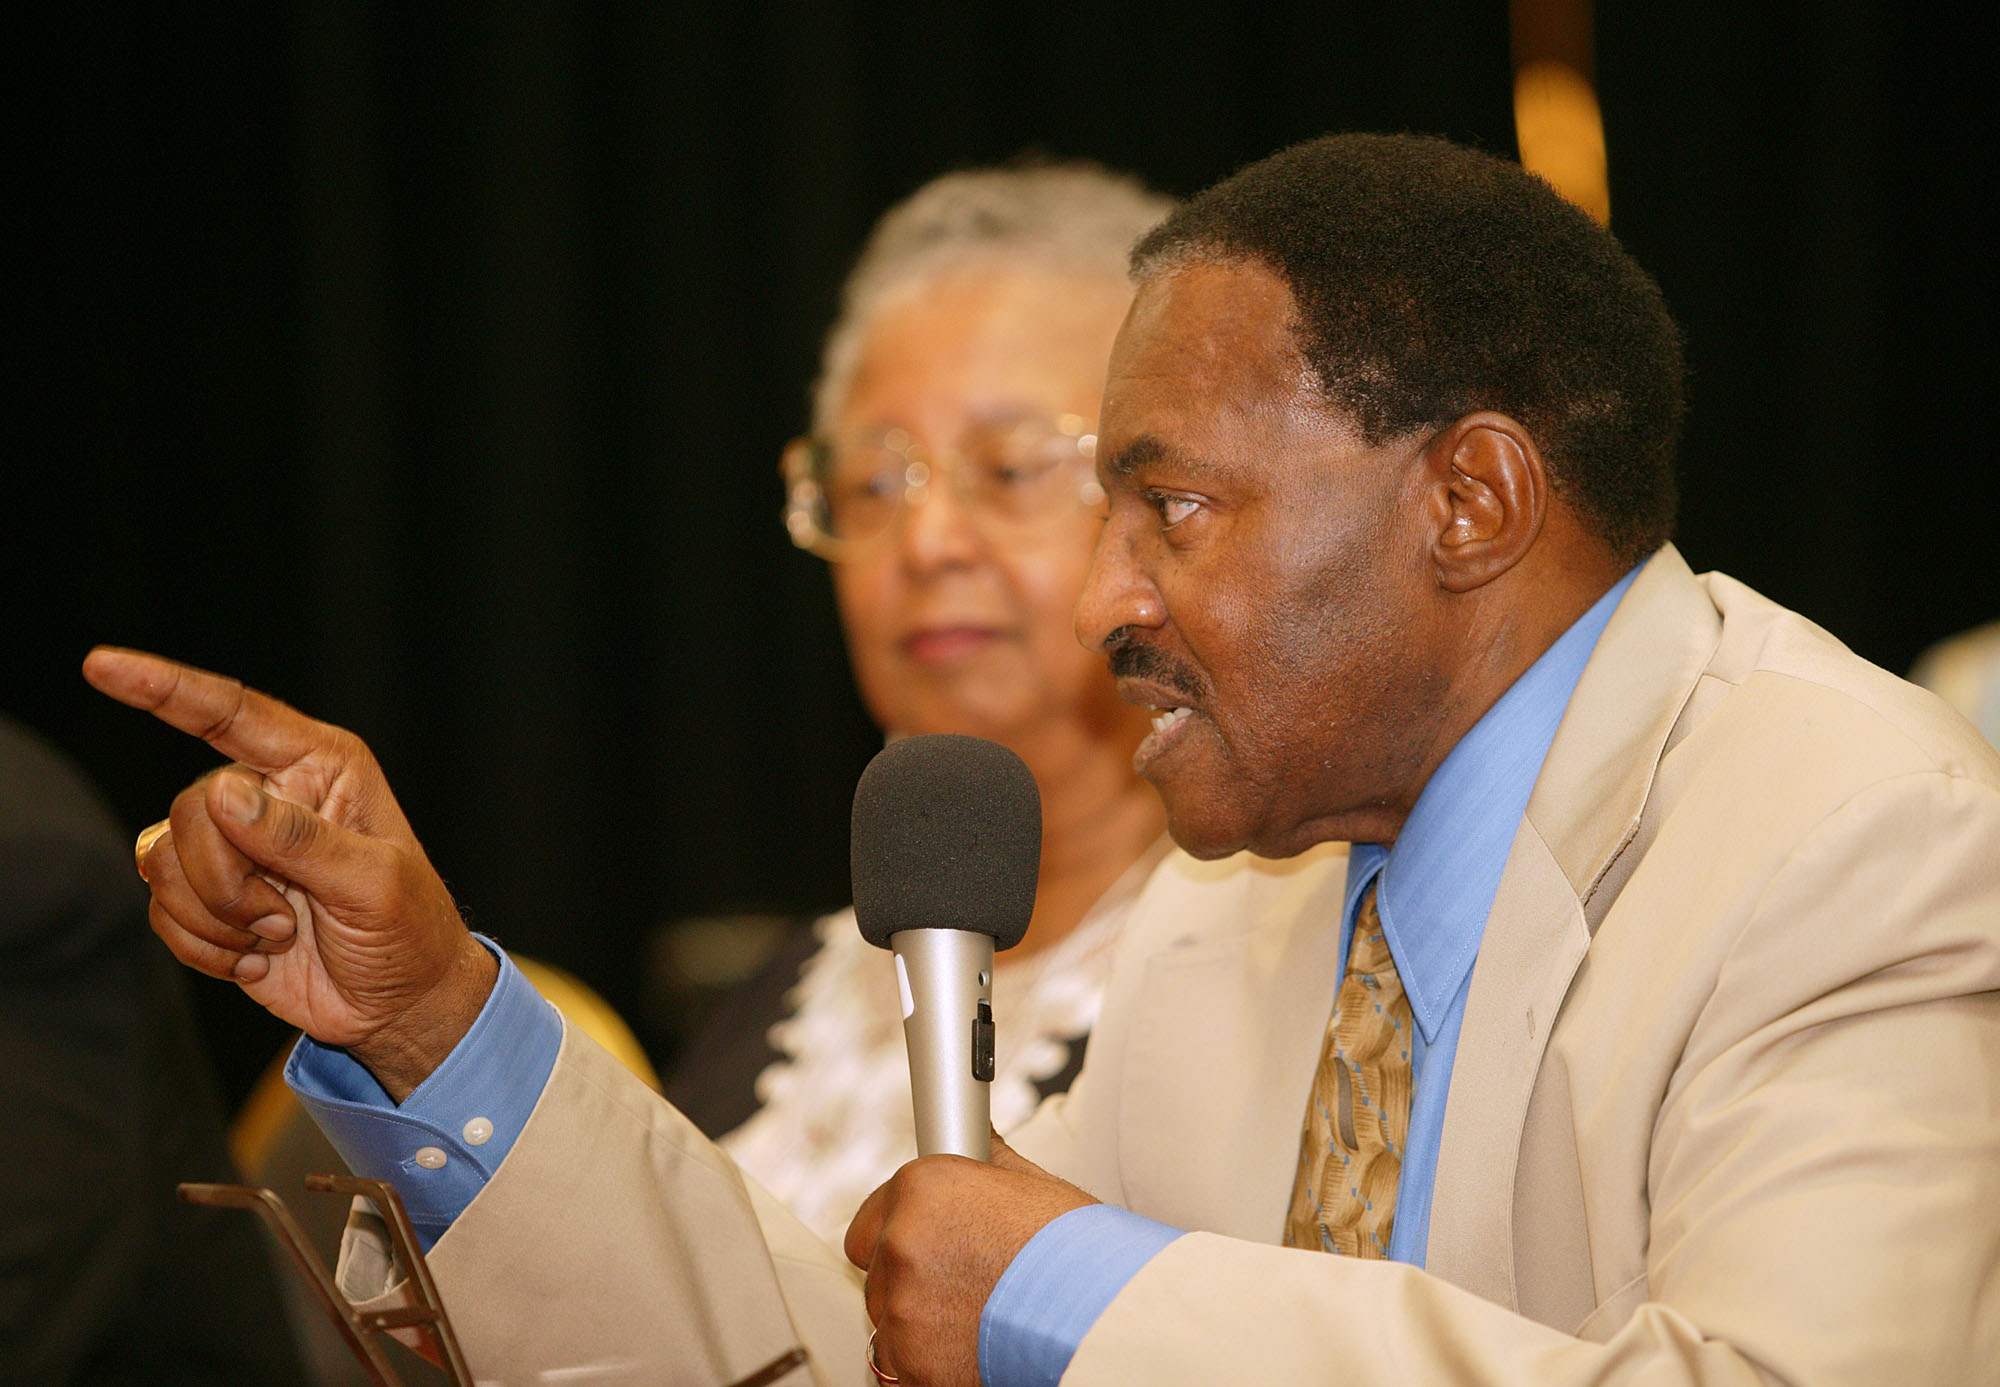 United Methodist Bishop Woodie W. White (right) and Barbara Thompson help lead a panel discussion during the Central Jurisdiction reunion. A UMNS photo by Mike DuBose